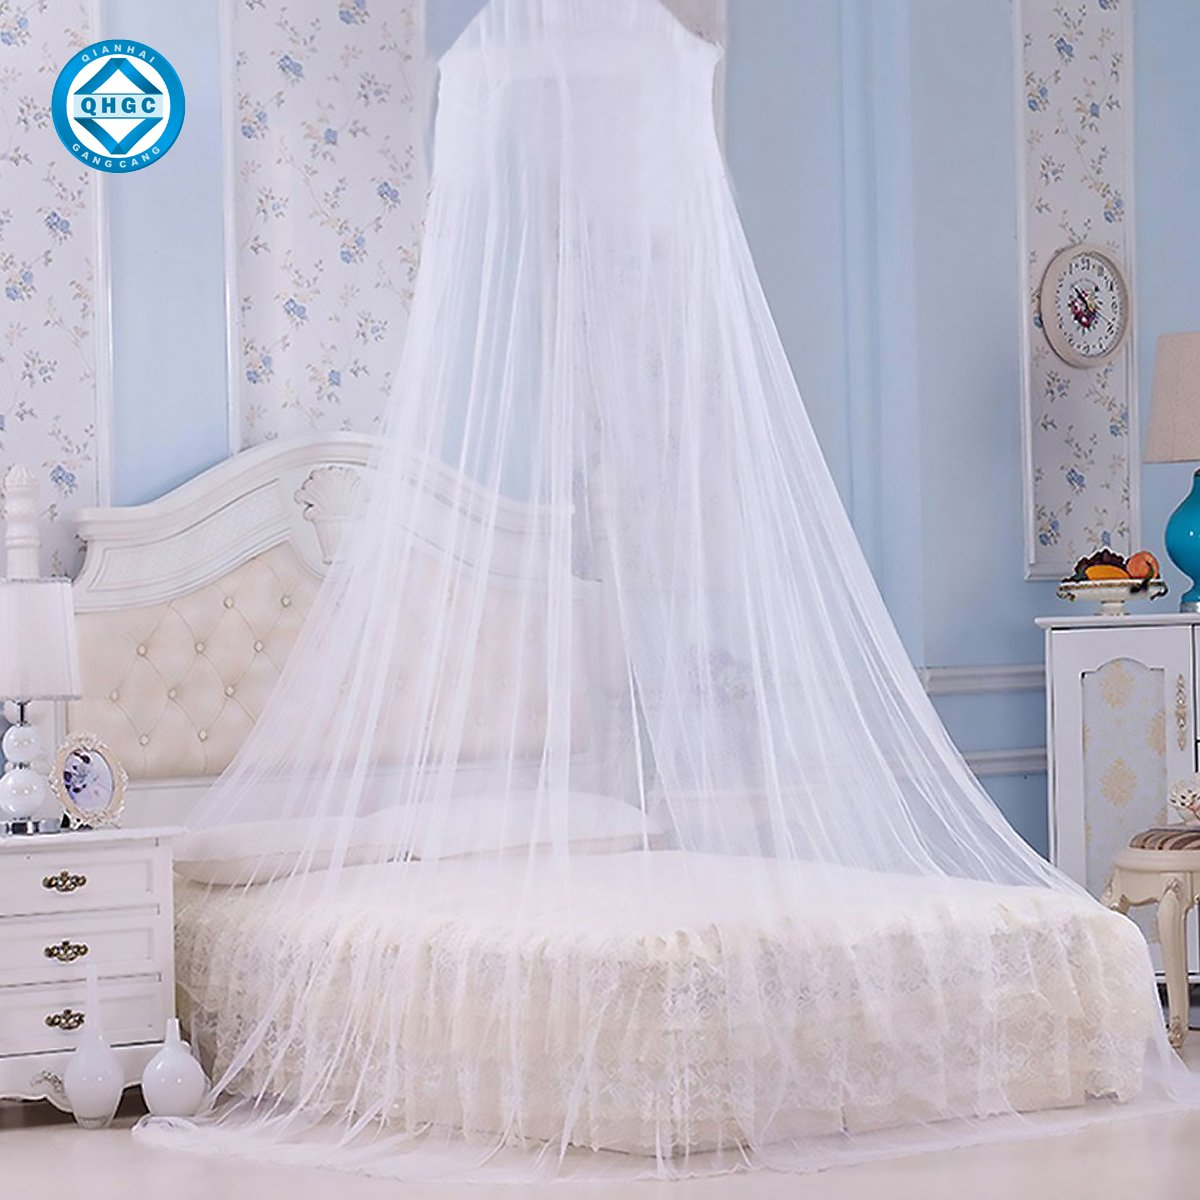 QHGC Home Mosquito net - Single Bed to Double Bed Mosquito Netting, Bed Canopy Curtains, Large White Mosquito Netting, Easy Installation, Carry Bag,Outdoor outings can Also be Used